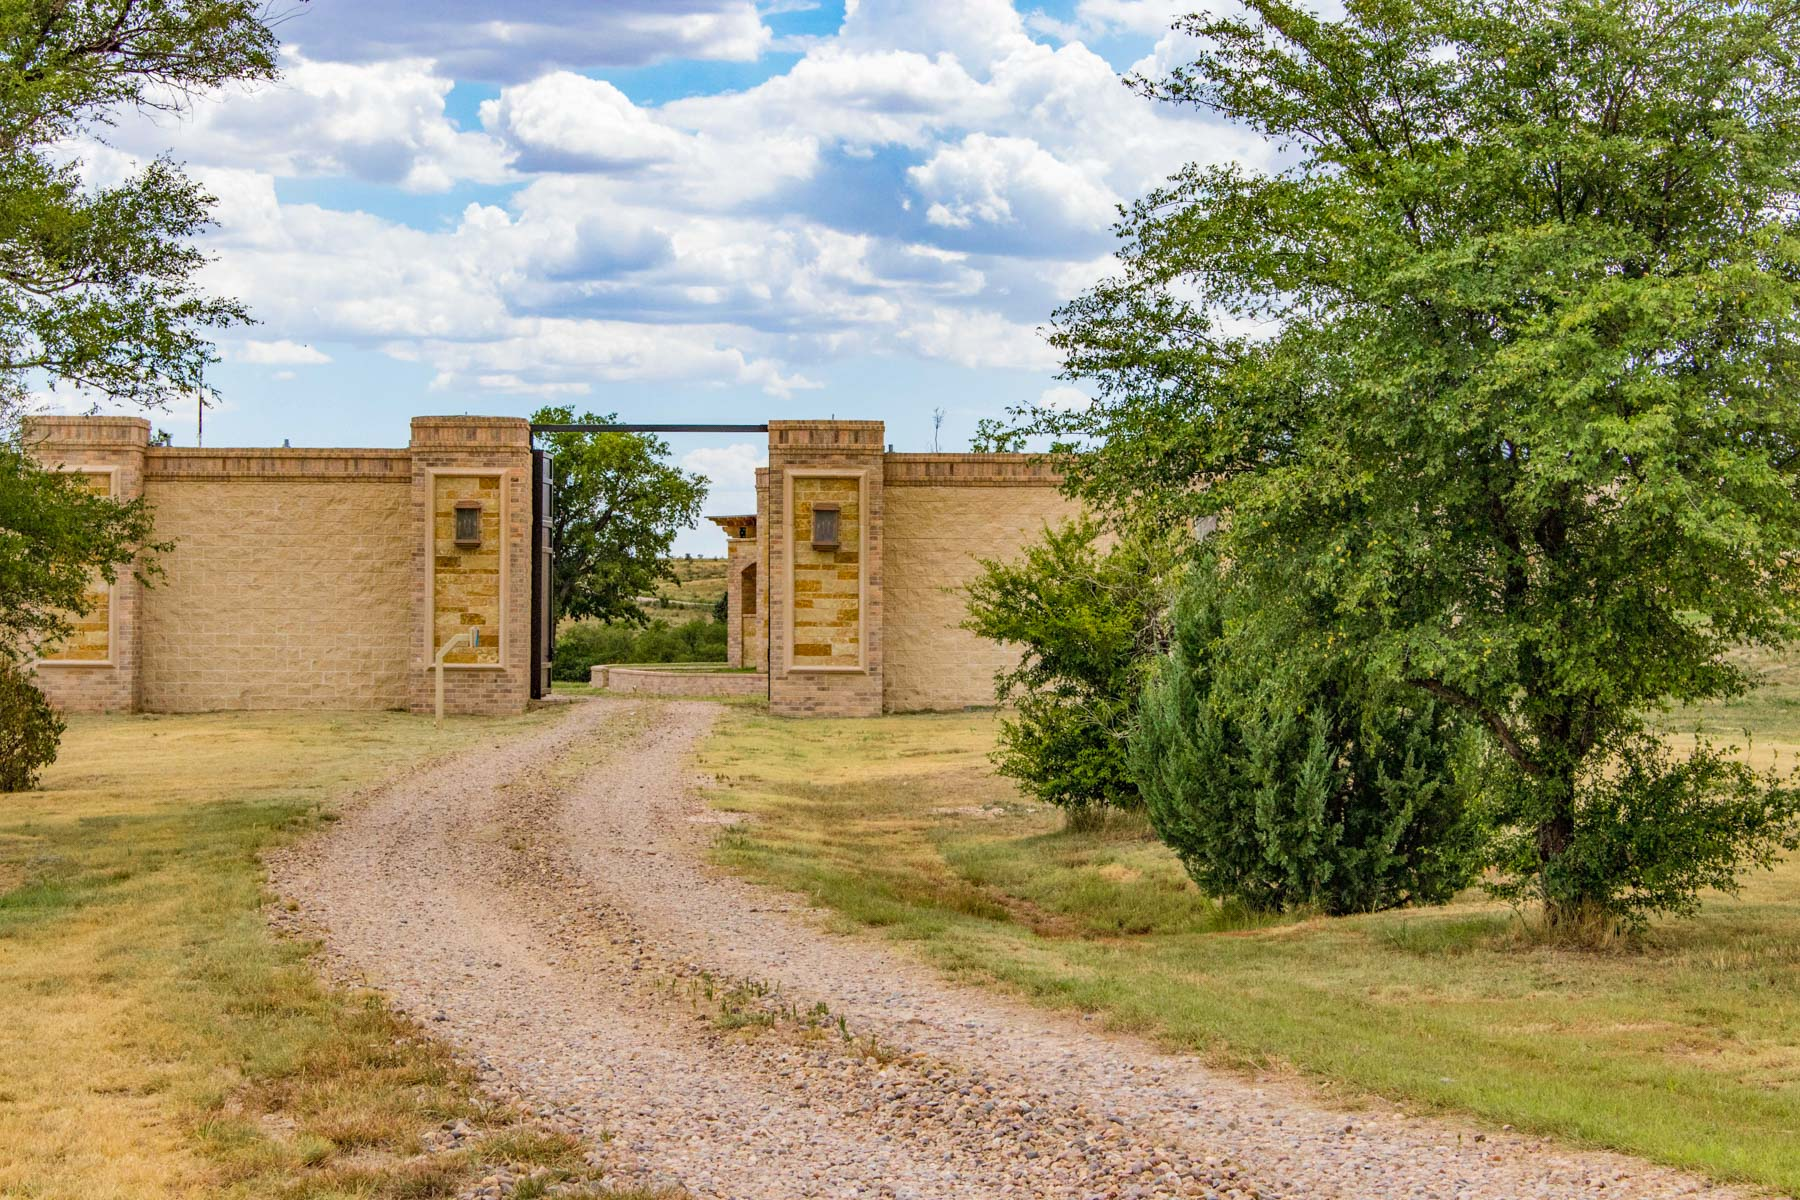 Single Family Home for Sale at Hope Survival Ranch 0 Hope Ranch, Canyon, Texas, 79016 United States